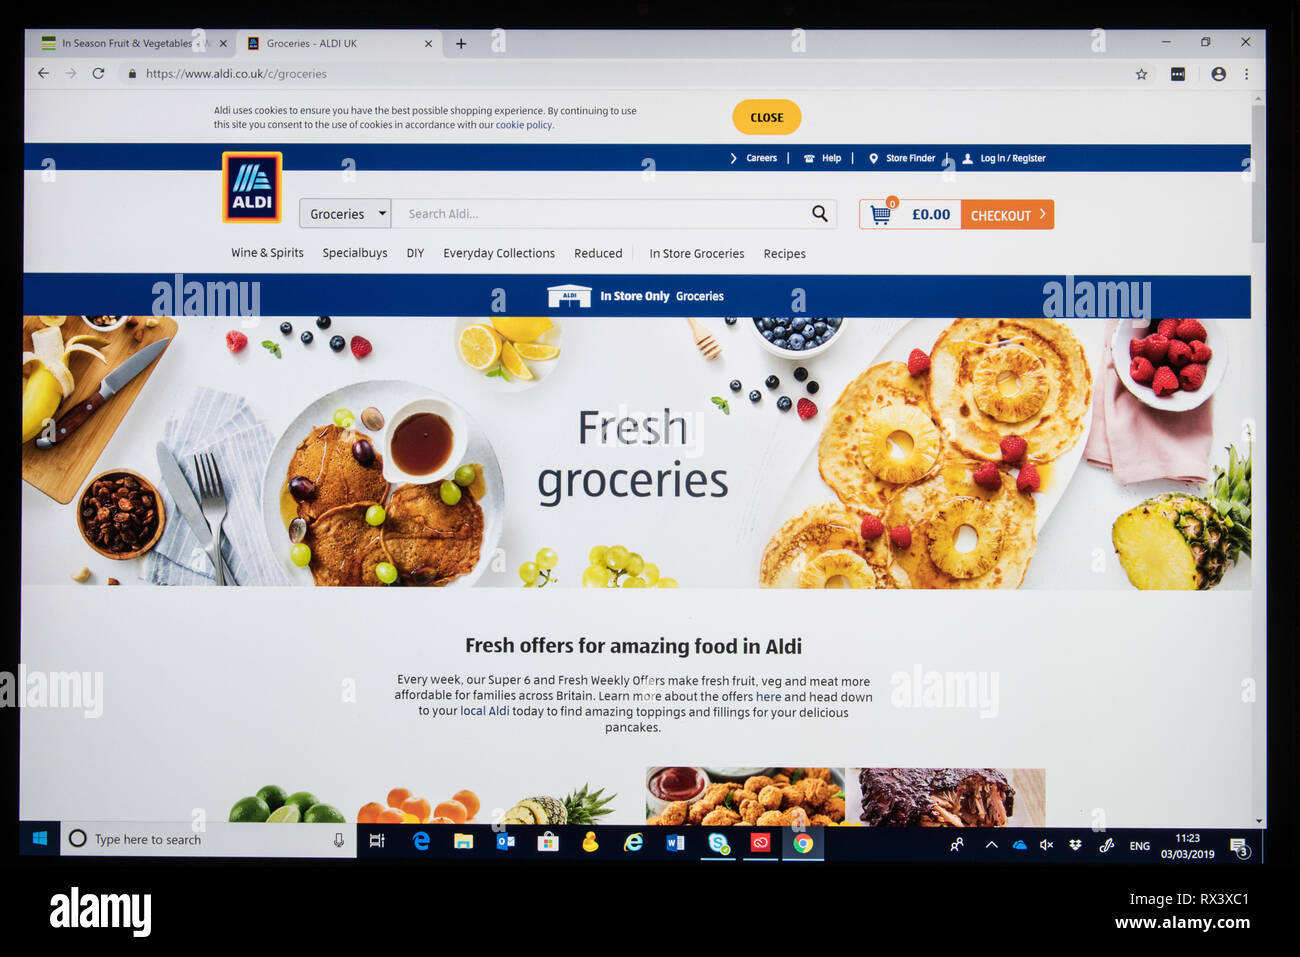 Aldi online shop screen shot showing Fresh Groceries page - Stock Image